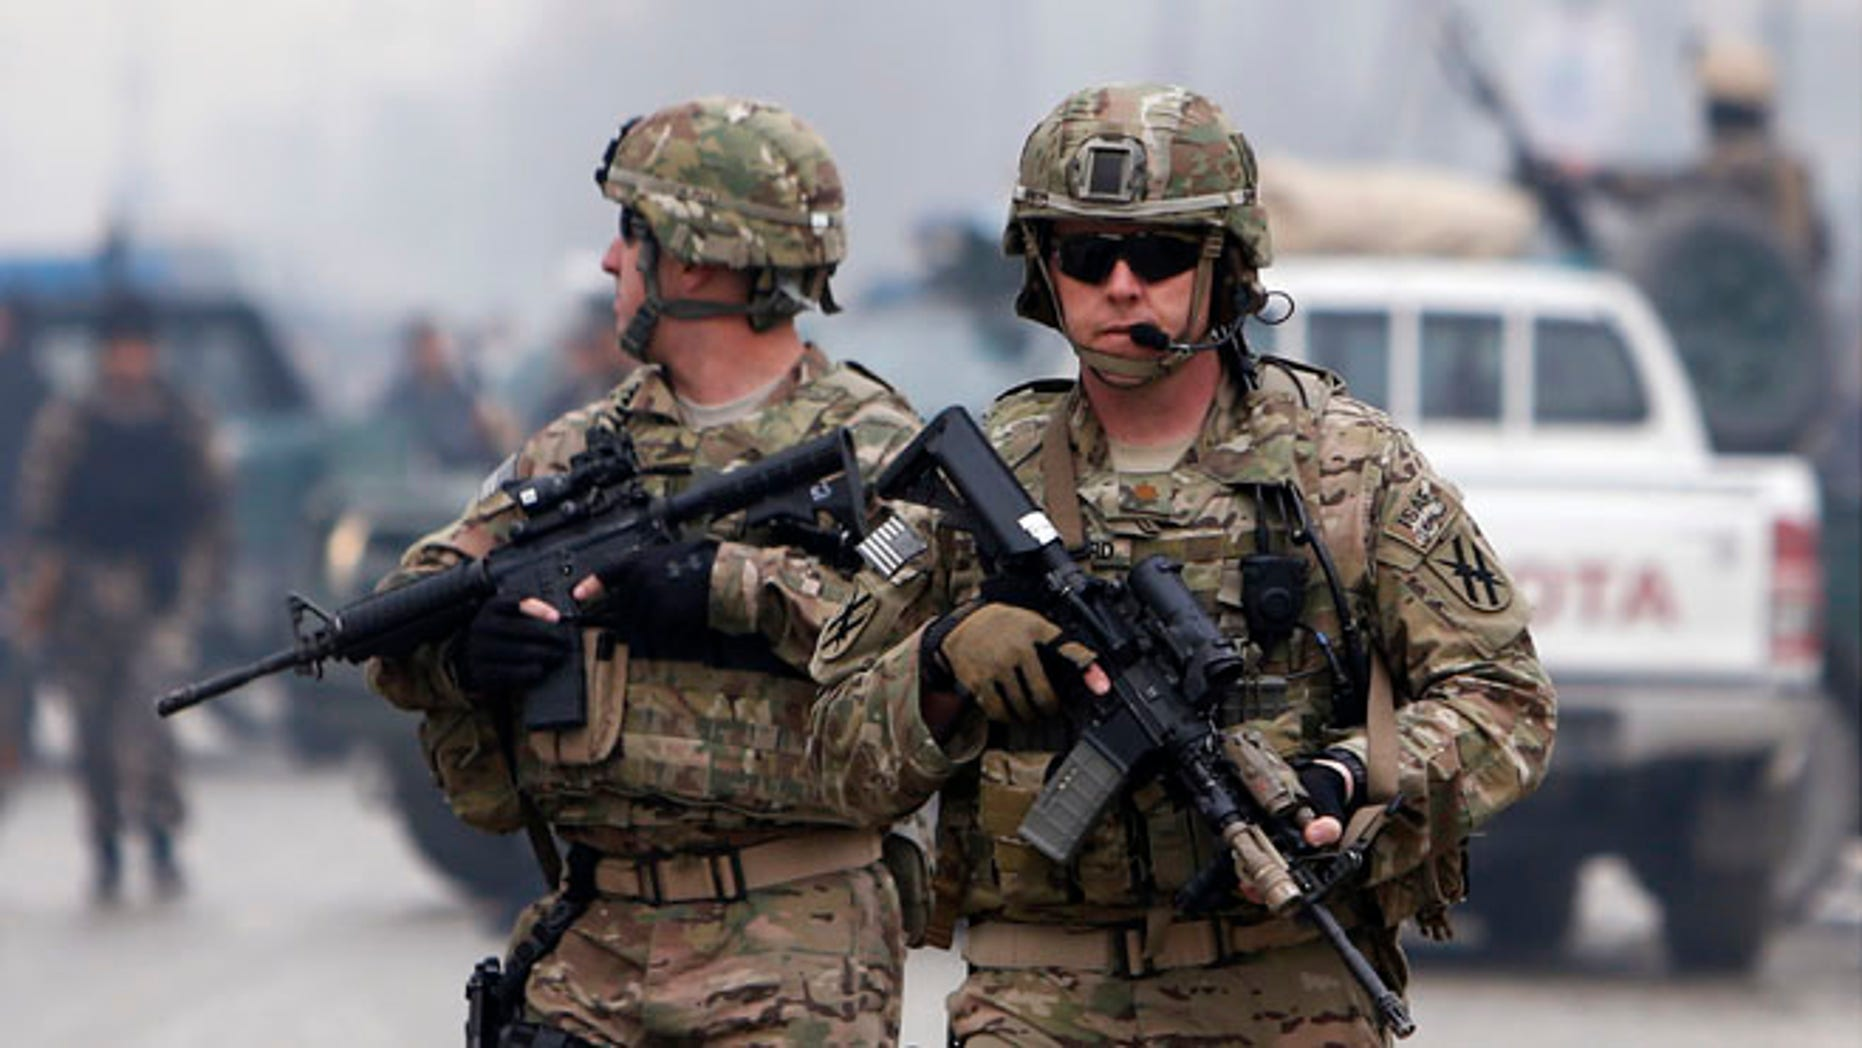 FILE: Feb. 20, 2014: U.S. troops in Kabul, Afghanistan.